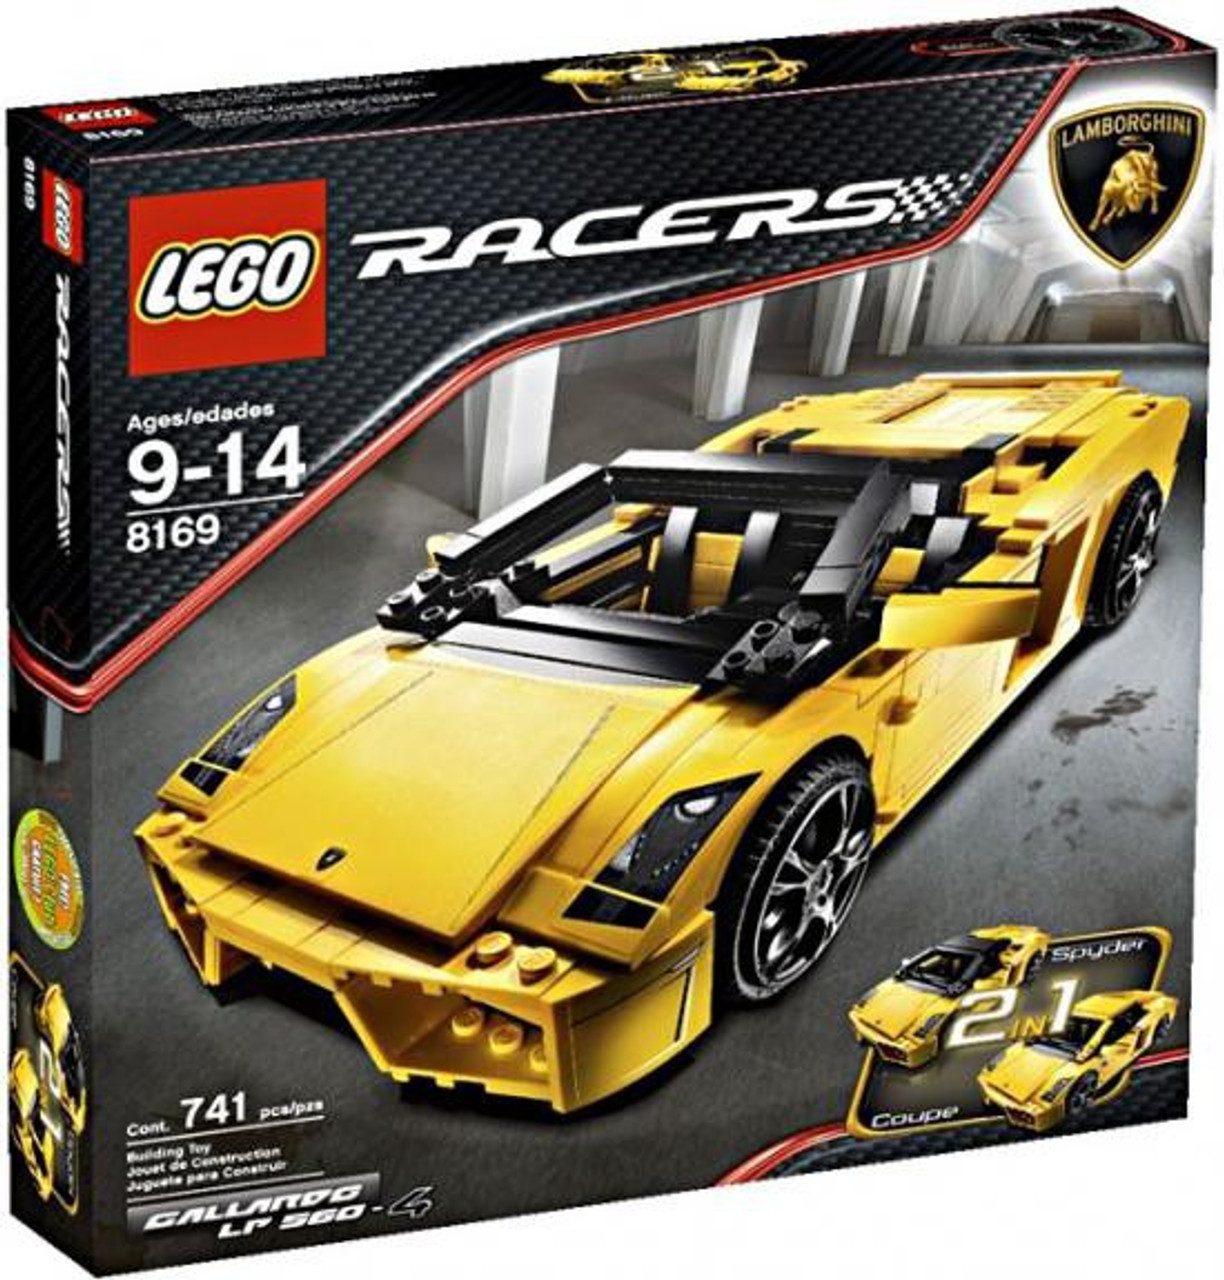 LEGO Racers Lamborghini Gallardo LP 560-4 Set #8169